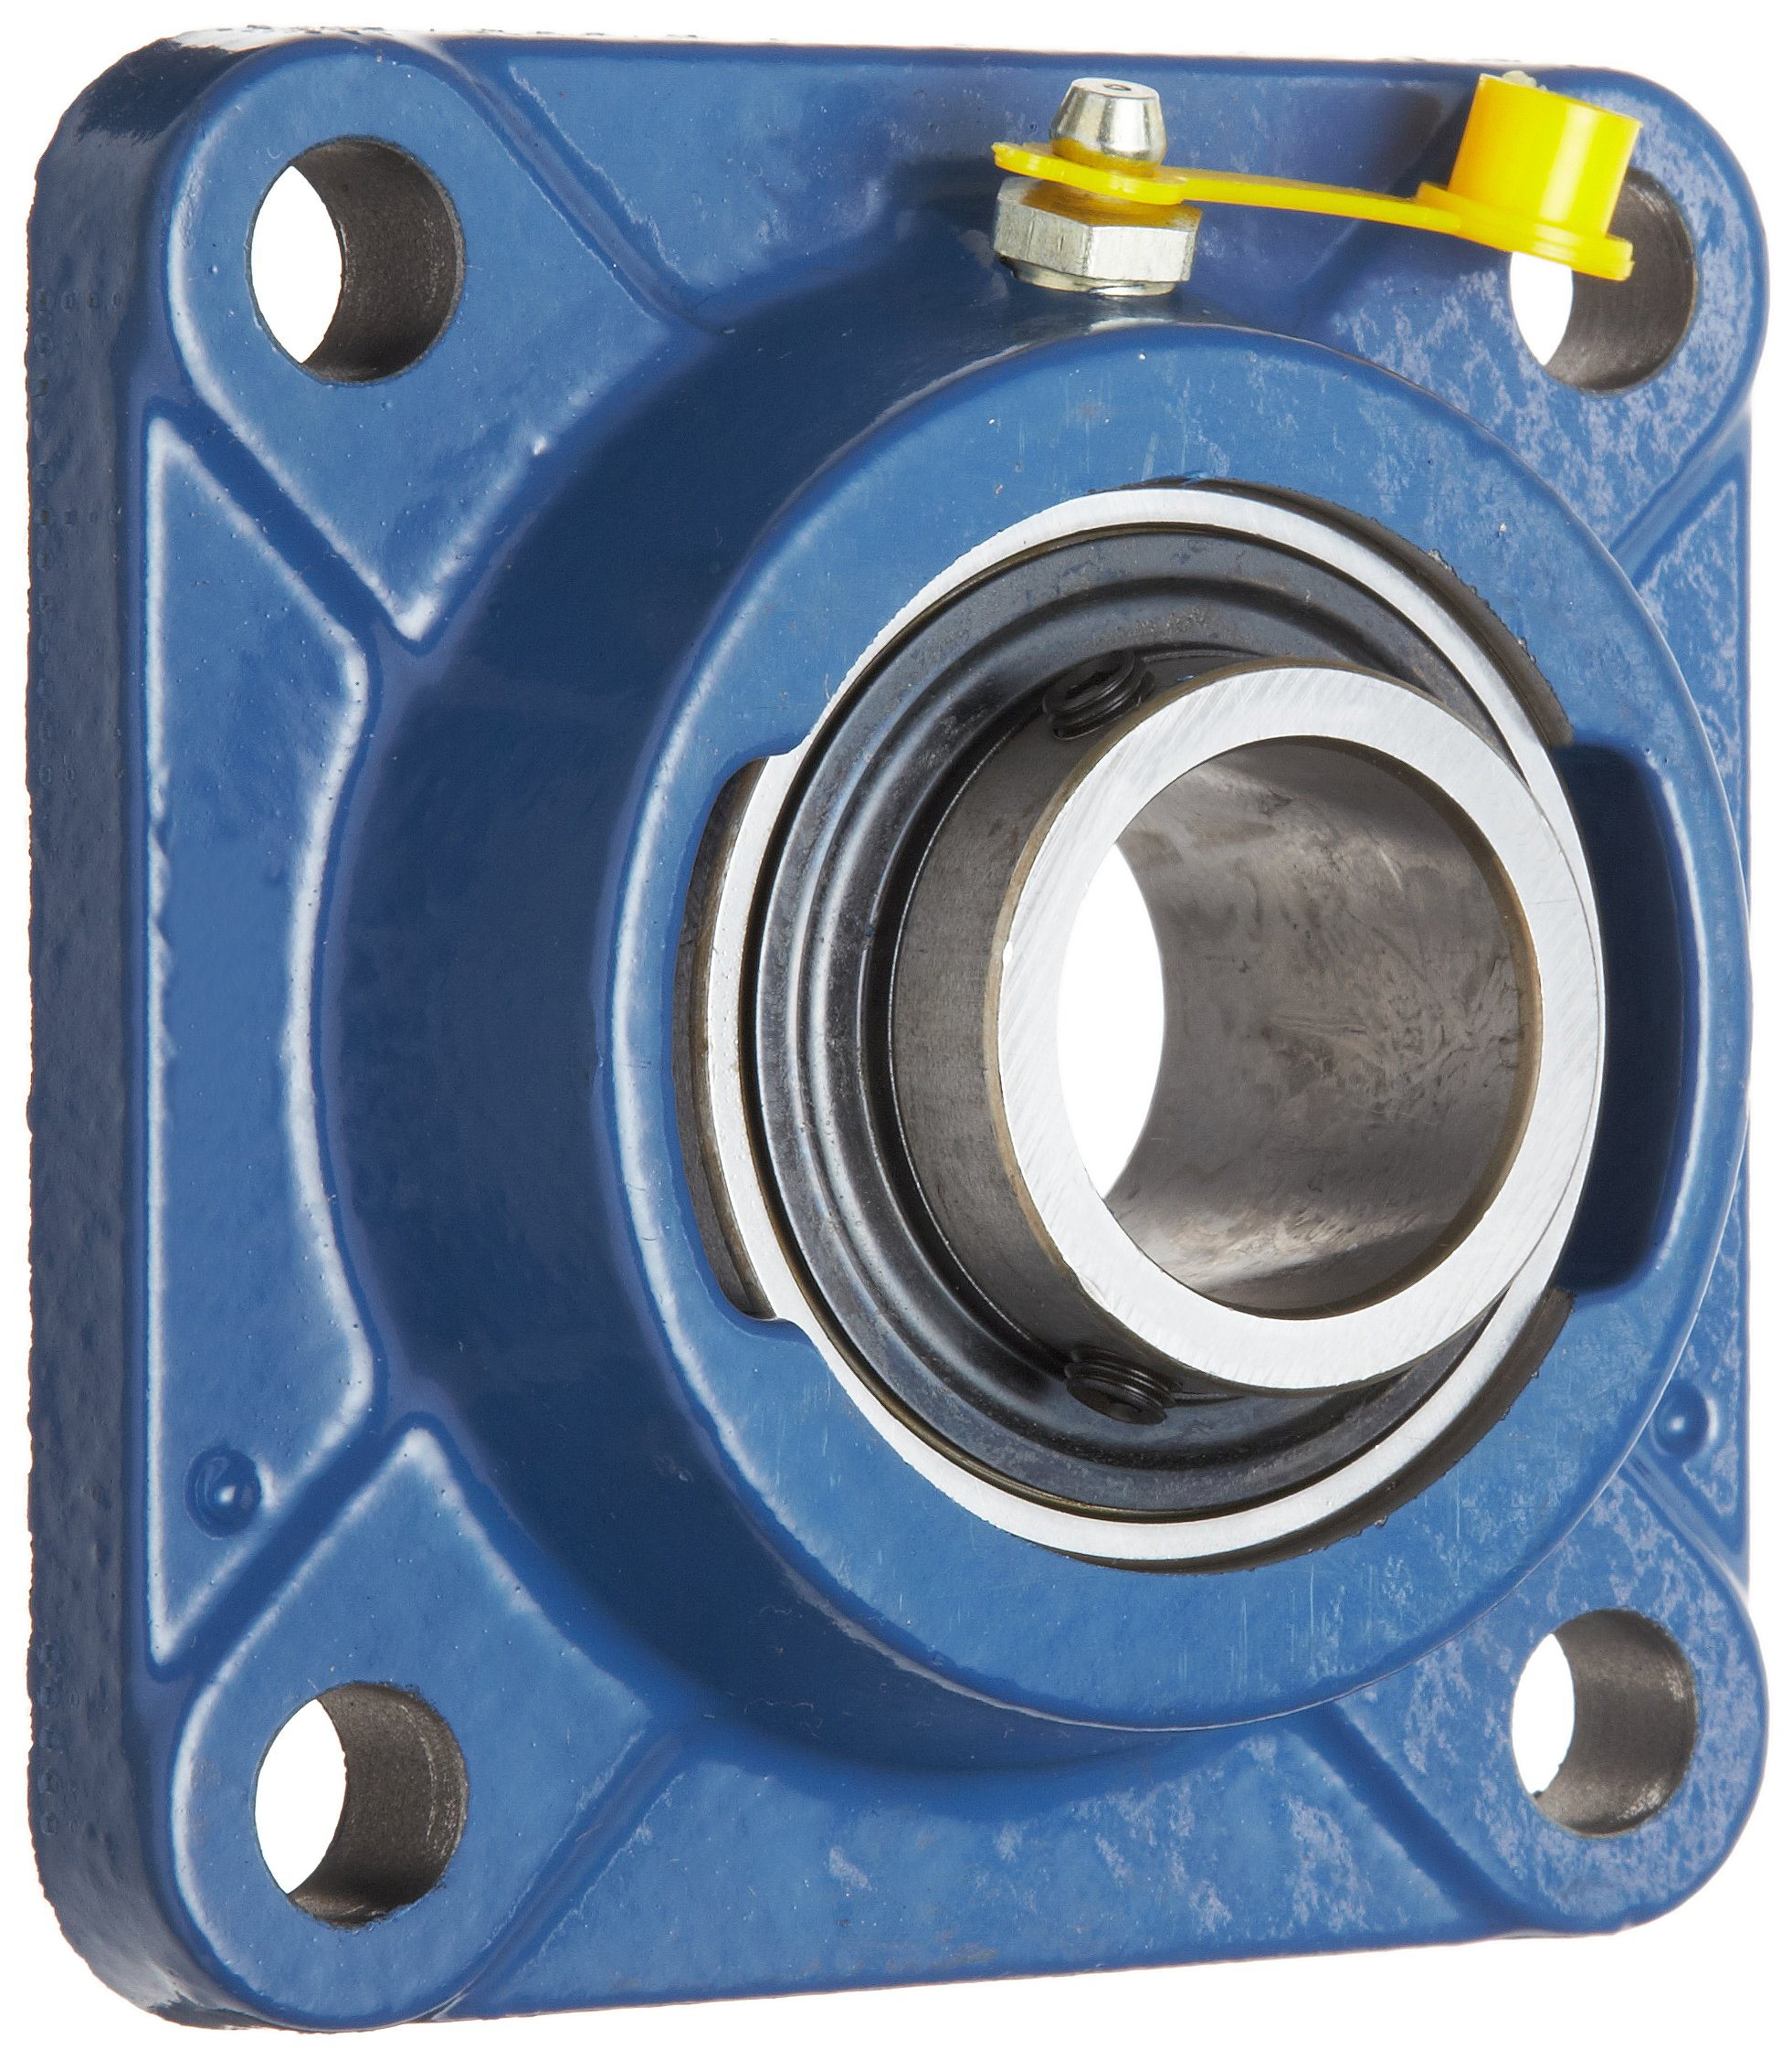 """SKF FY 1. TF Ball Bearing Flange Unit, 4 Bolts, Setscrew Locking, Regreasable, Contact and Flinger Seal, Cast Iron, Inch, 1"""" Bore, 2-3/4"""" Bolt Hole Spacing Width, 3150lbf Dynamic Load Capacity"""